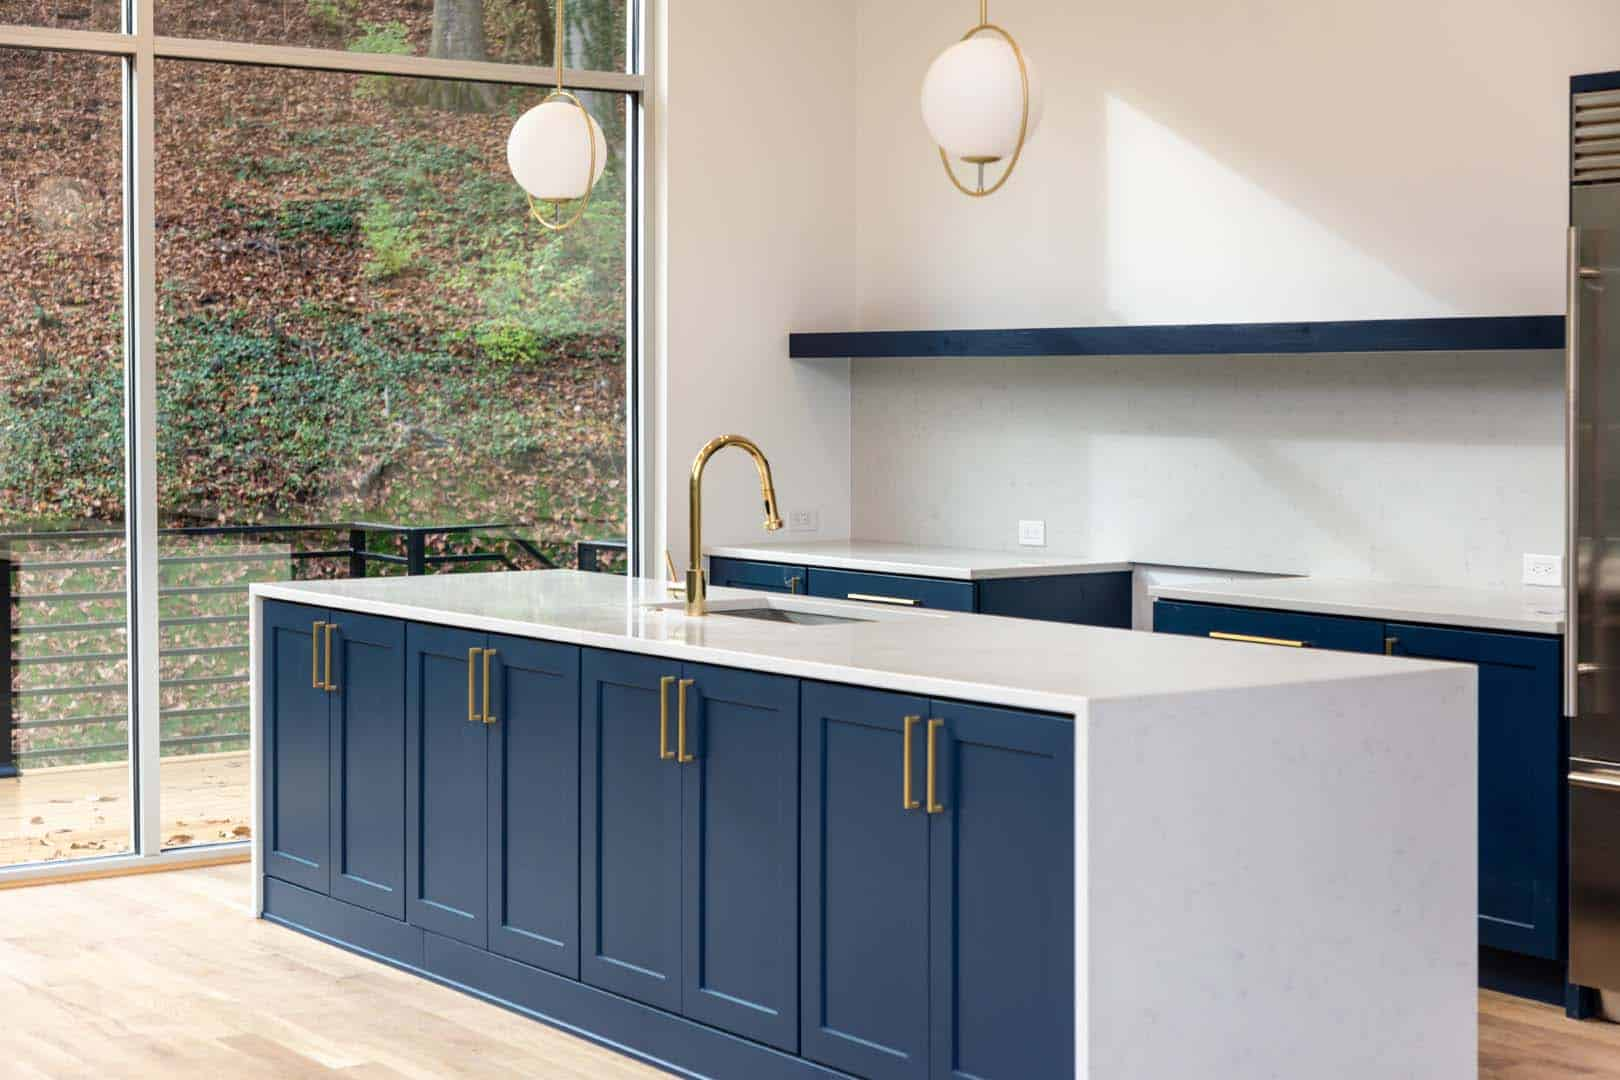 A kitchen island with blue cabinets and a golden sink faucet next to a large window